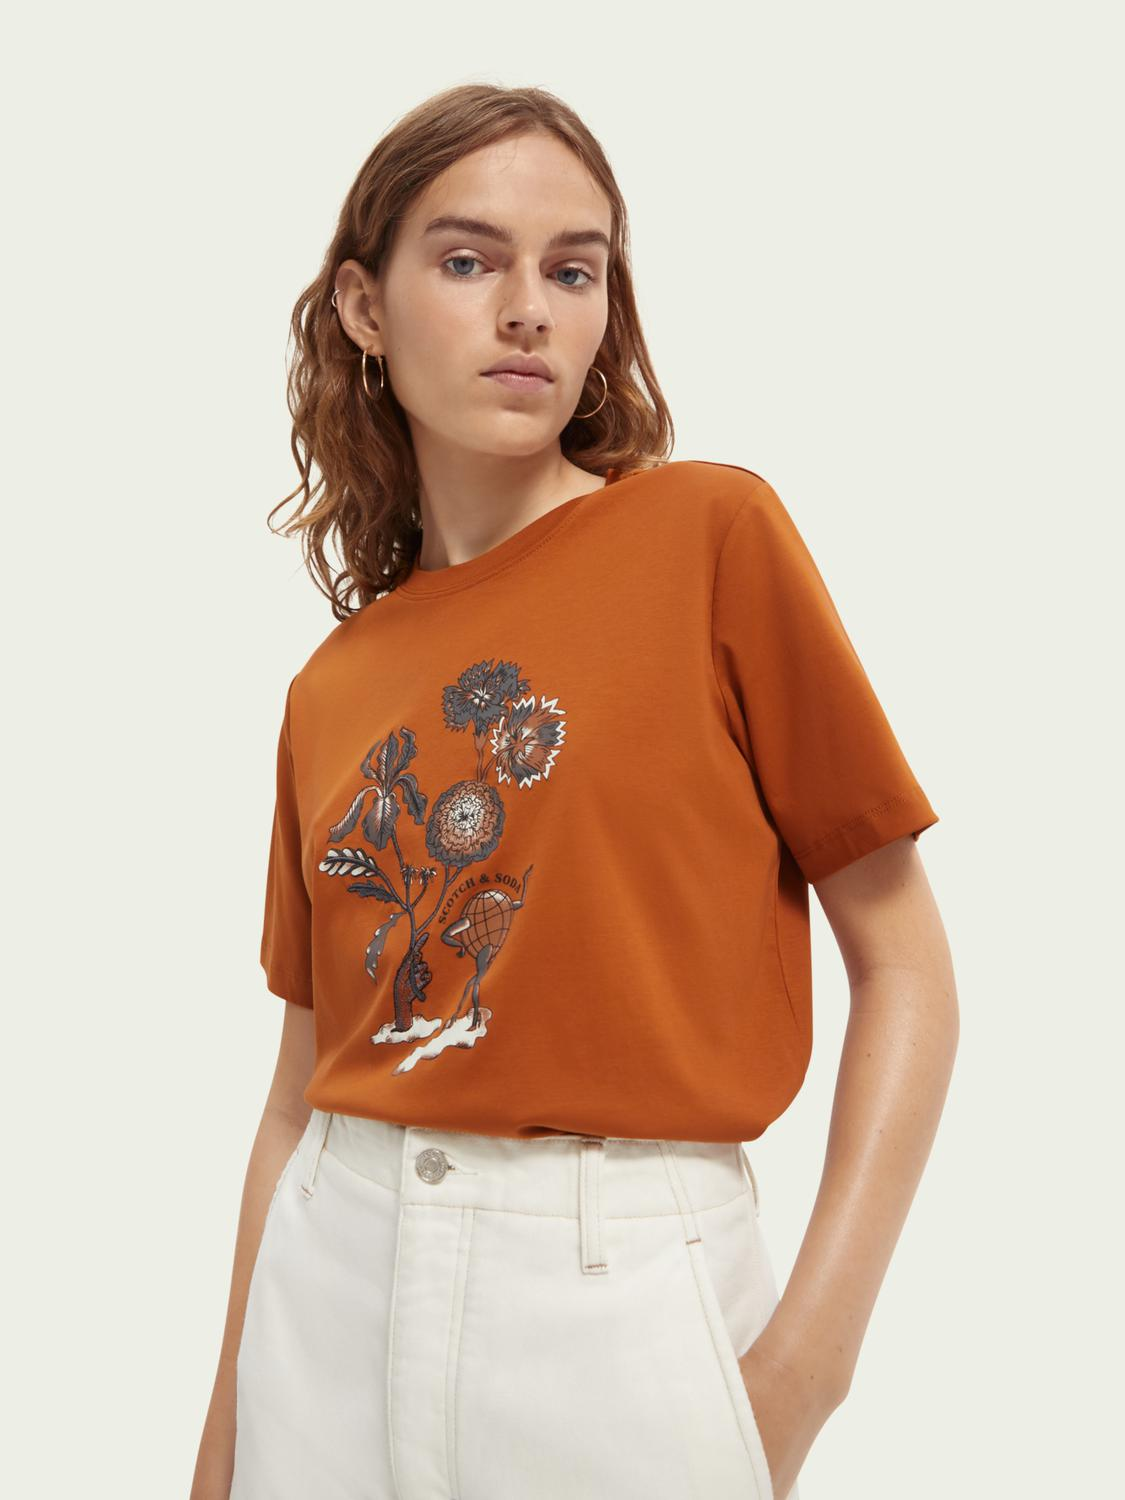 Relaxed-fit graphic T-shirt